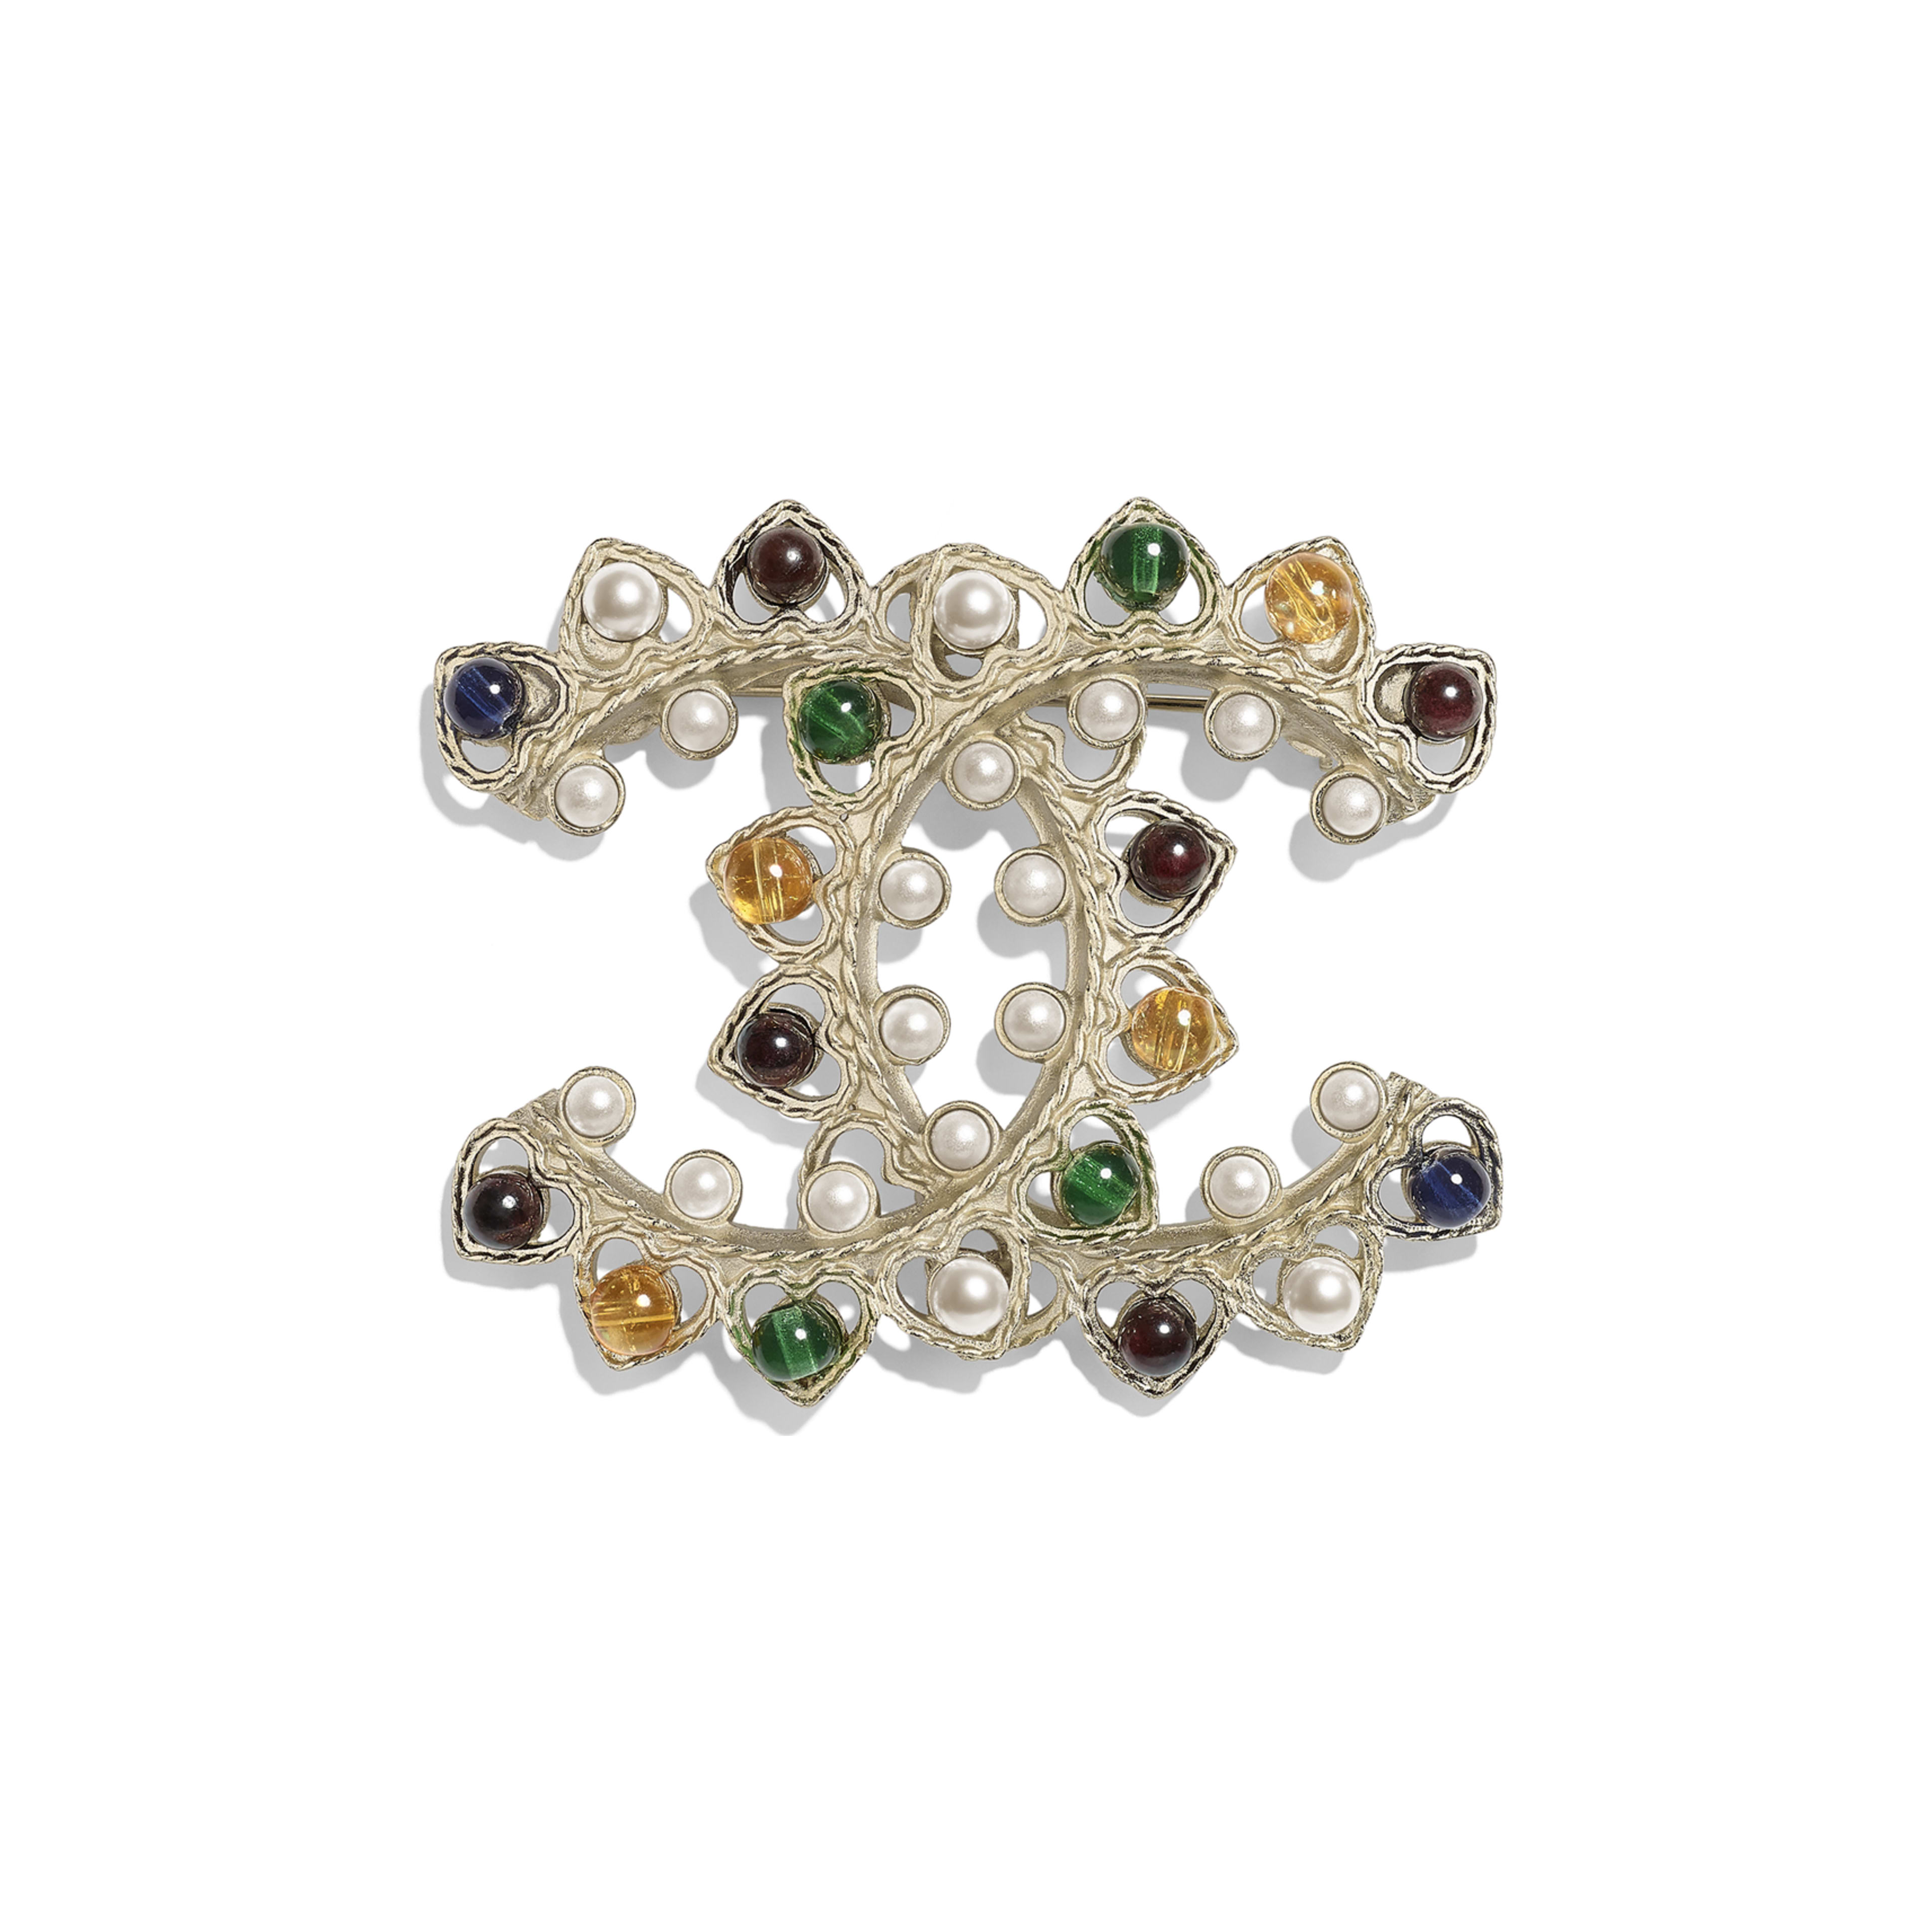 Brooch - Gold, Pearly White & Multicolor - Metal, Natural Stones & Glass Pearls - Default view - see full sized version